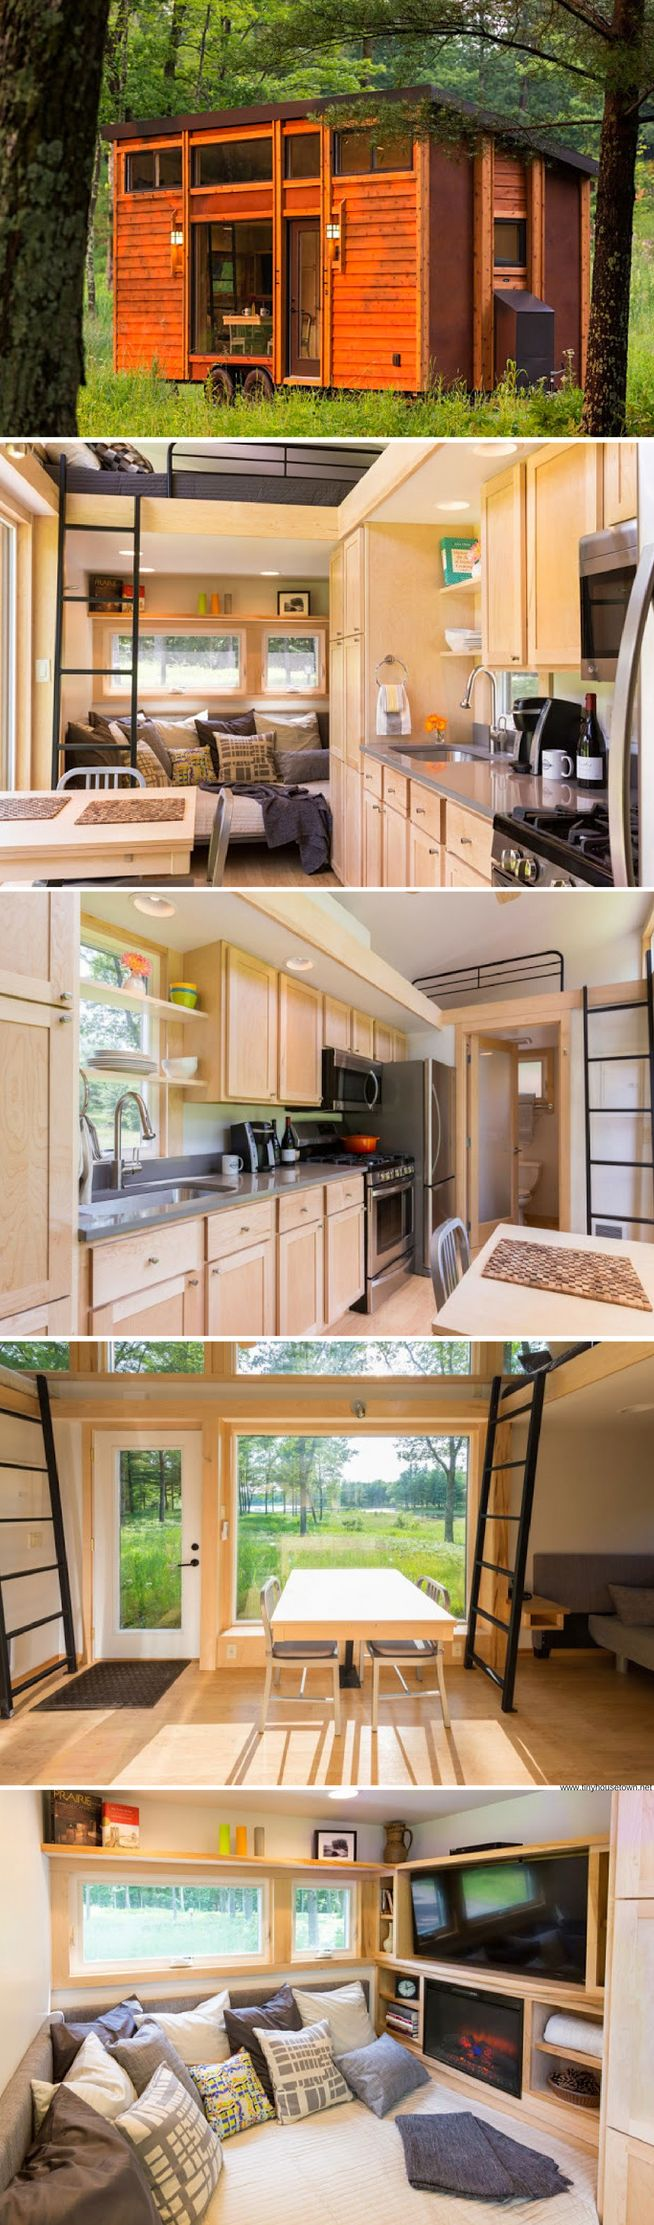 Converting sheds into livable space miniature homes and spaces - A Beautiful 269 Sq Ft Tiny House From Escape Homes Livable Shedslight